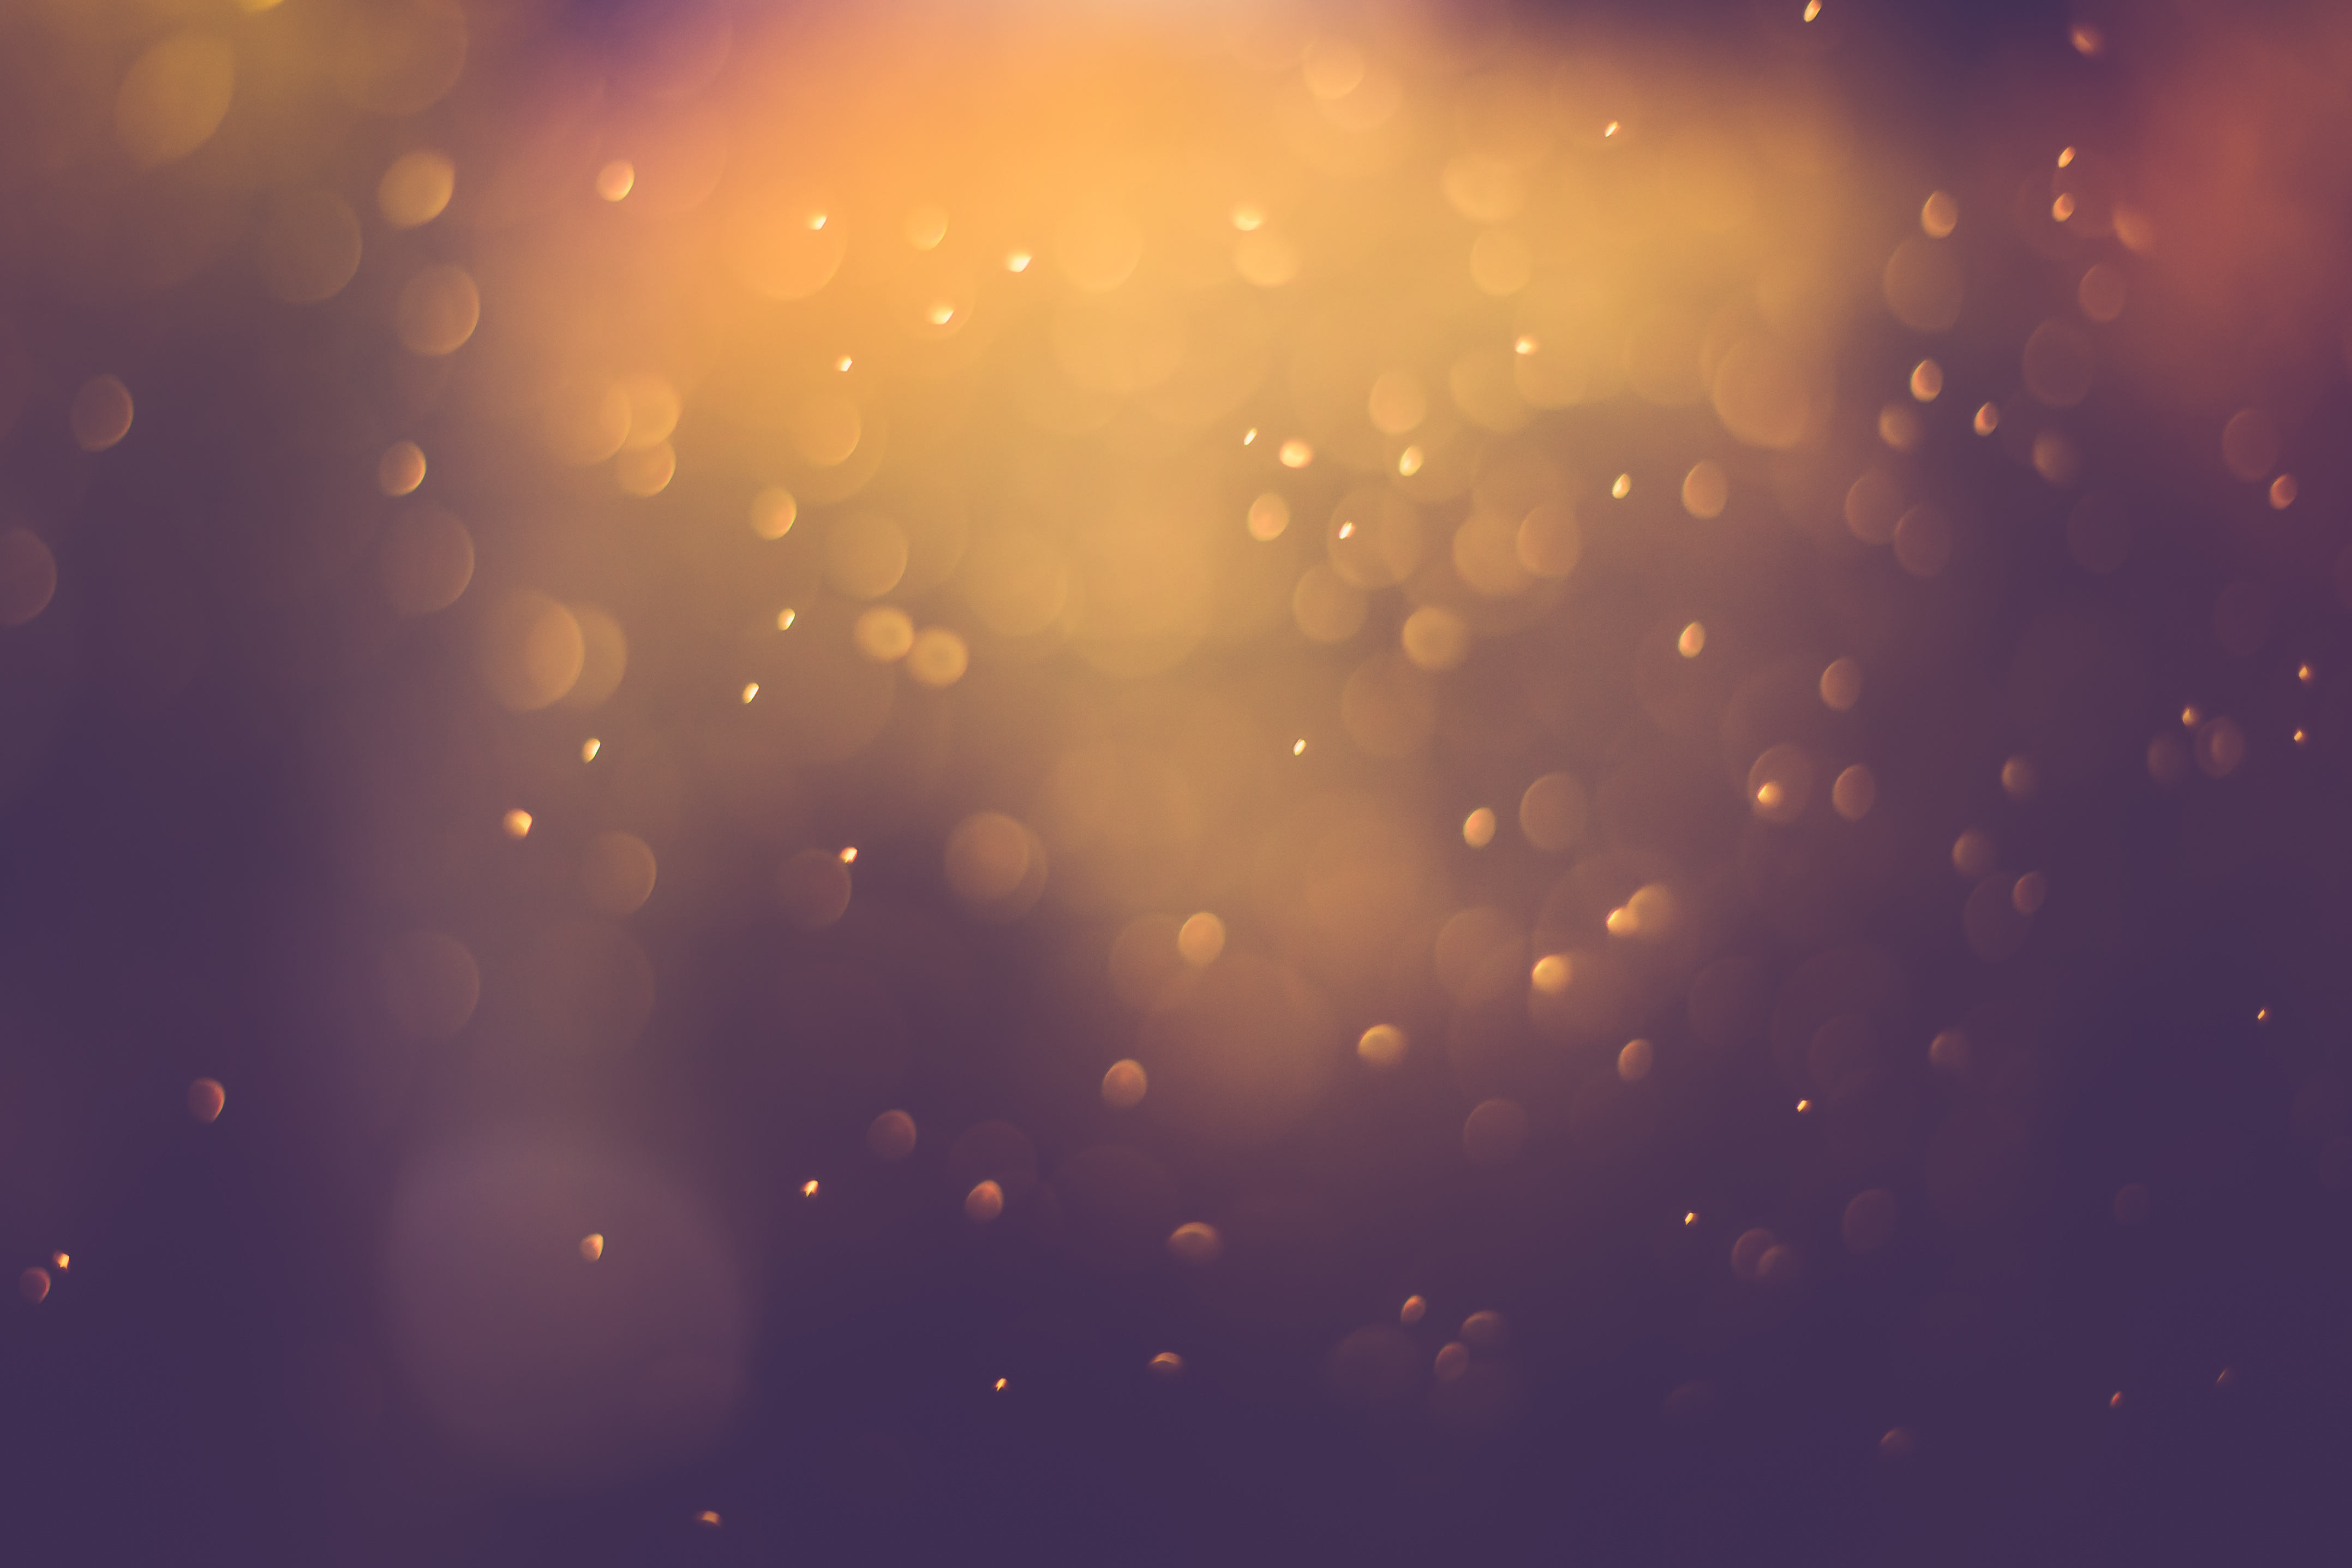 10 Beautifully Abstract High Res Bokeh Wallpapers OSXDaily 4311x2874